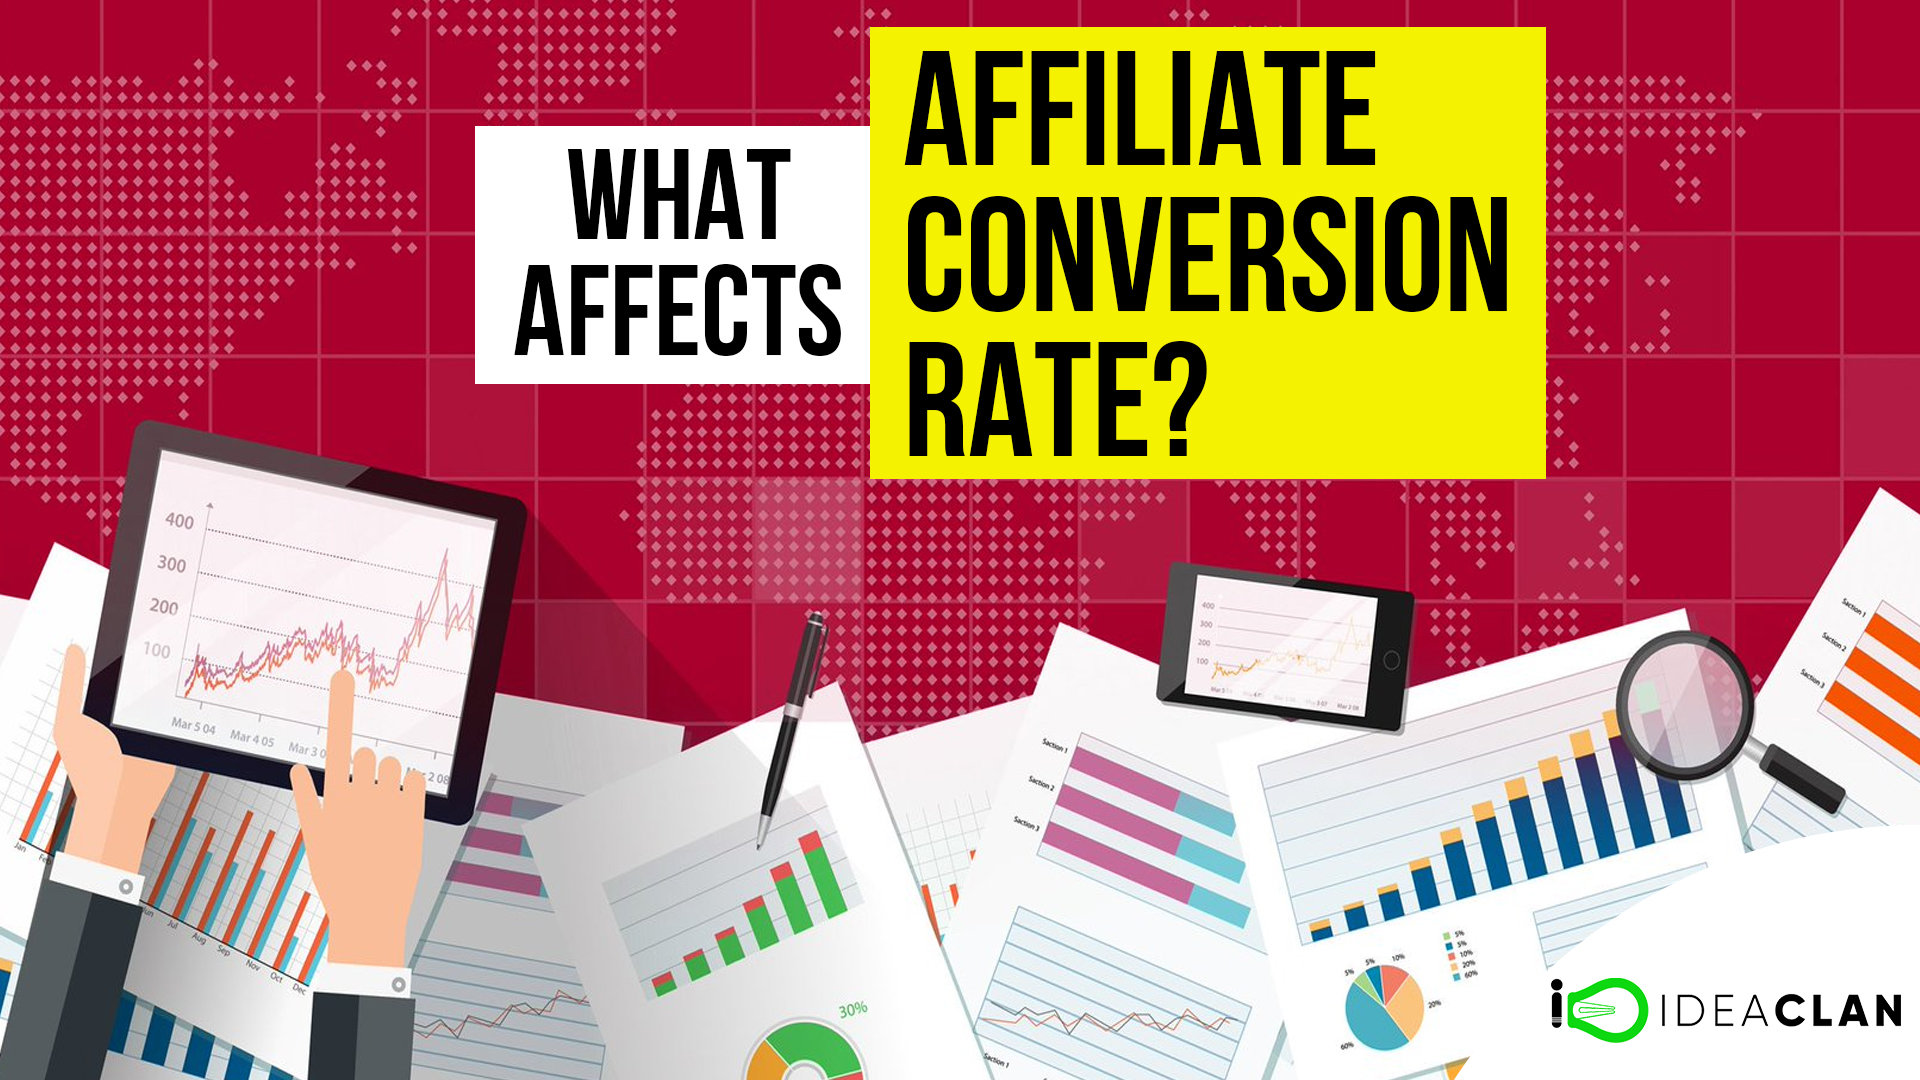 14 Reasons Why Your Affiliate Conversion Rate Is Low